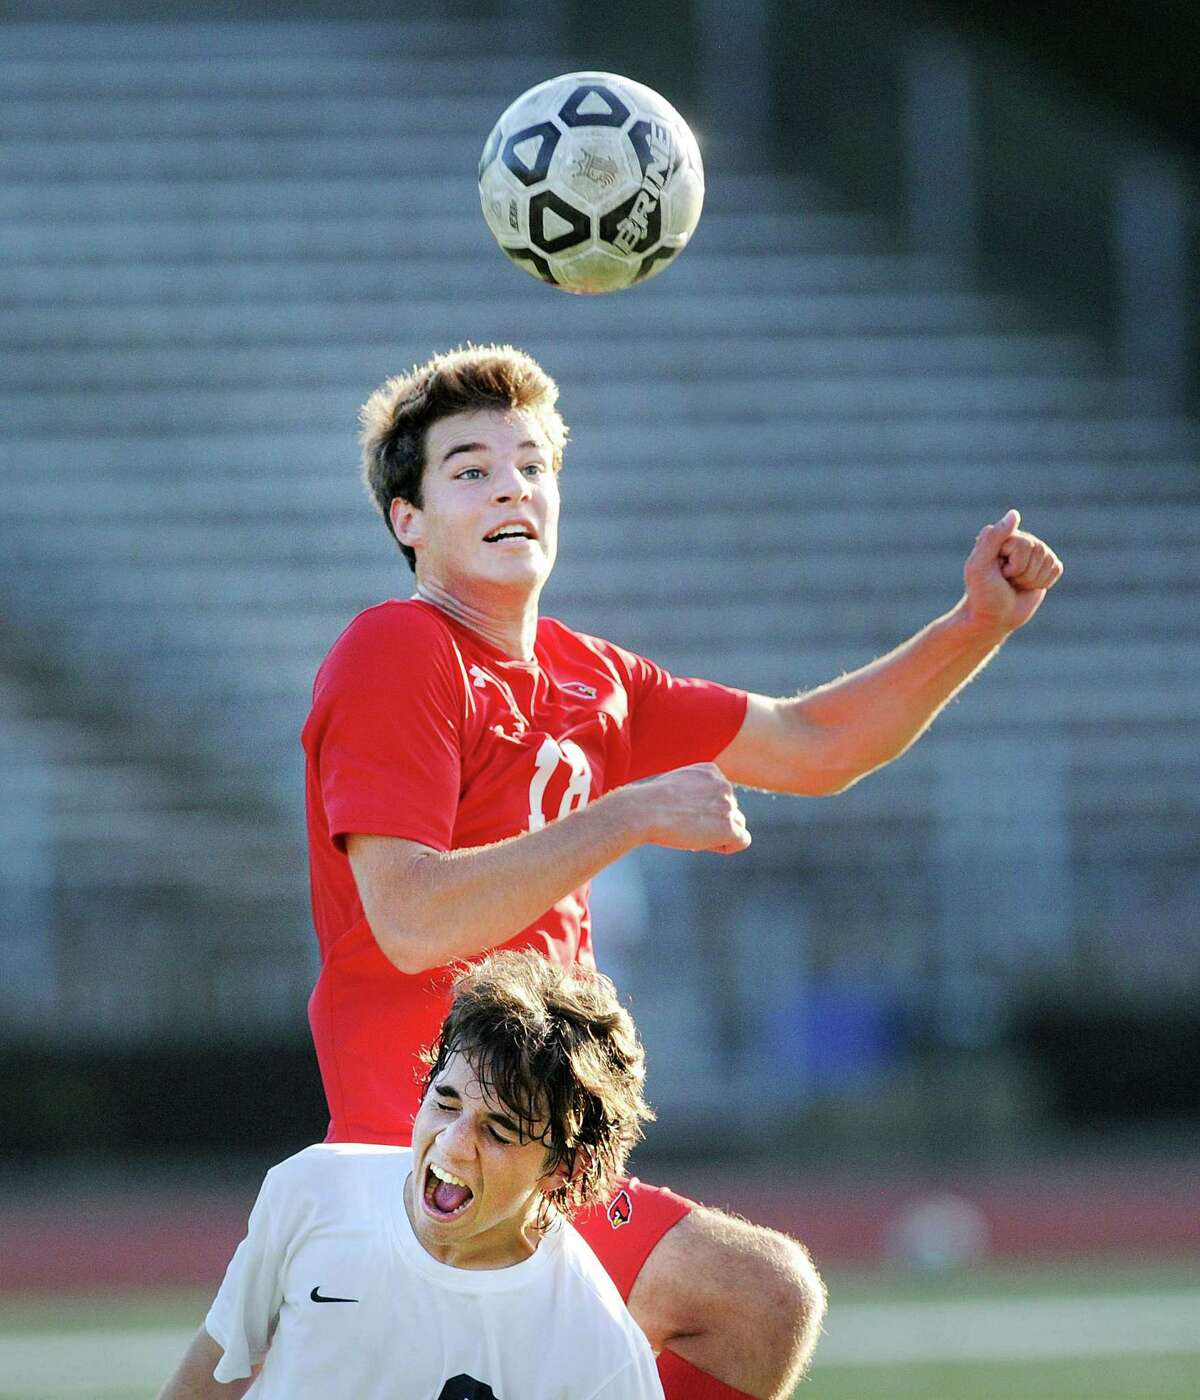 Dan Bourgeois of Greenwich, top, goes high above a Staples defender to head the ball during the boys high school soccer match between Greenwich High School and Staples High School at Greenwich, Conn., Wednesday, Sept. 26, 2018.